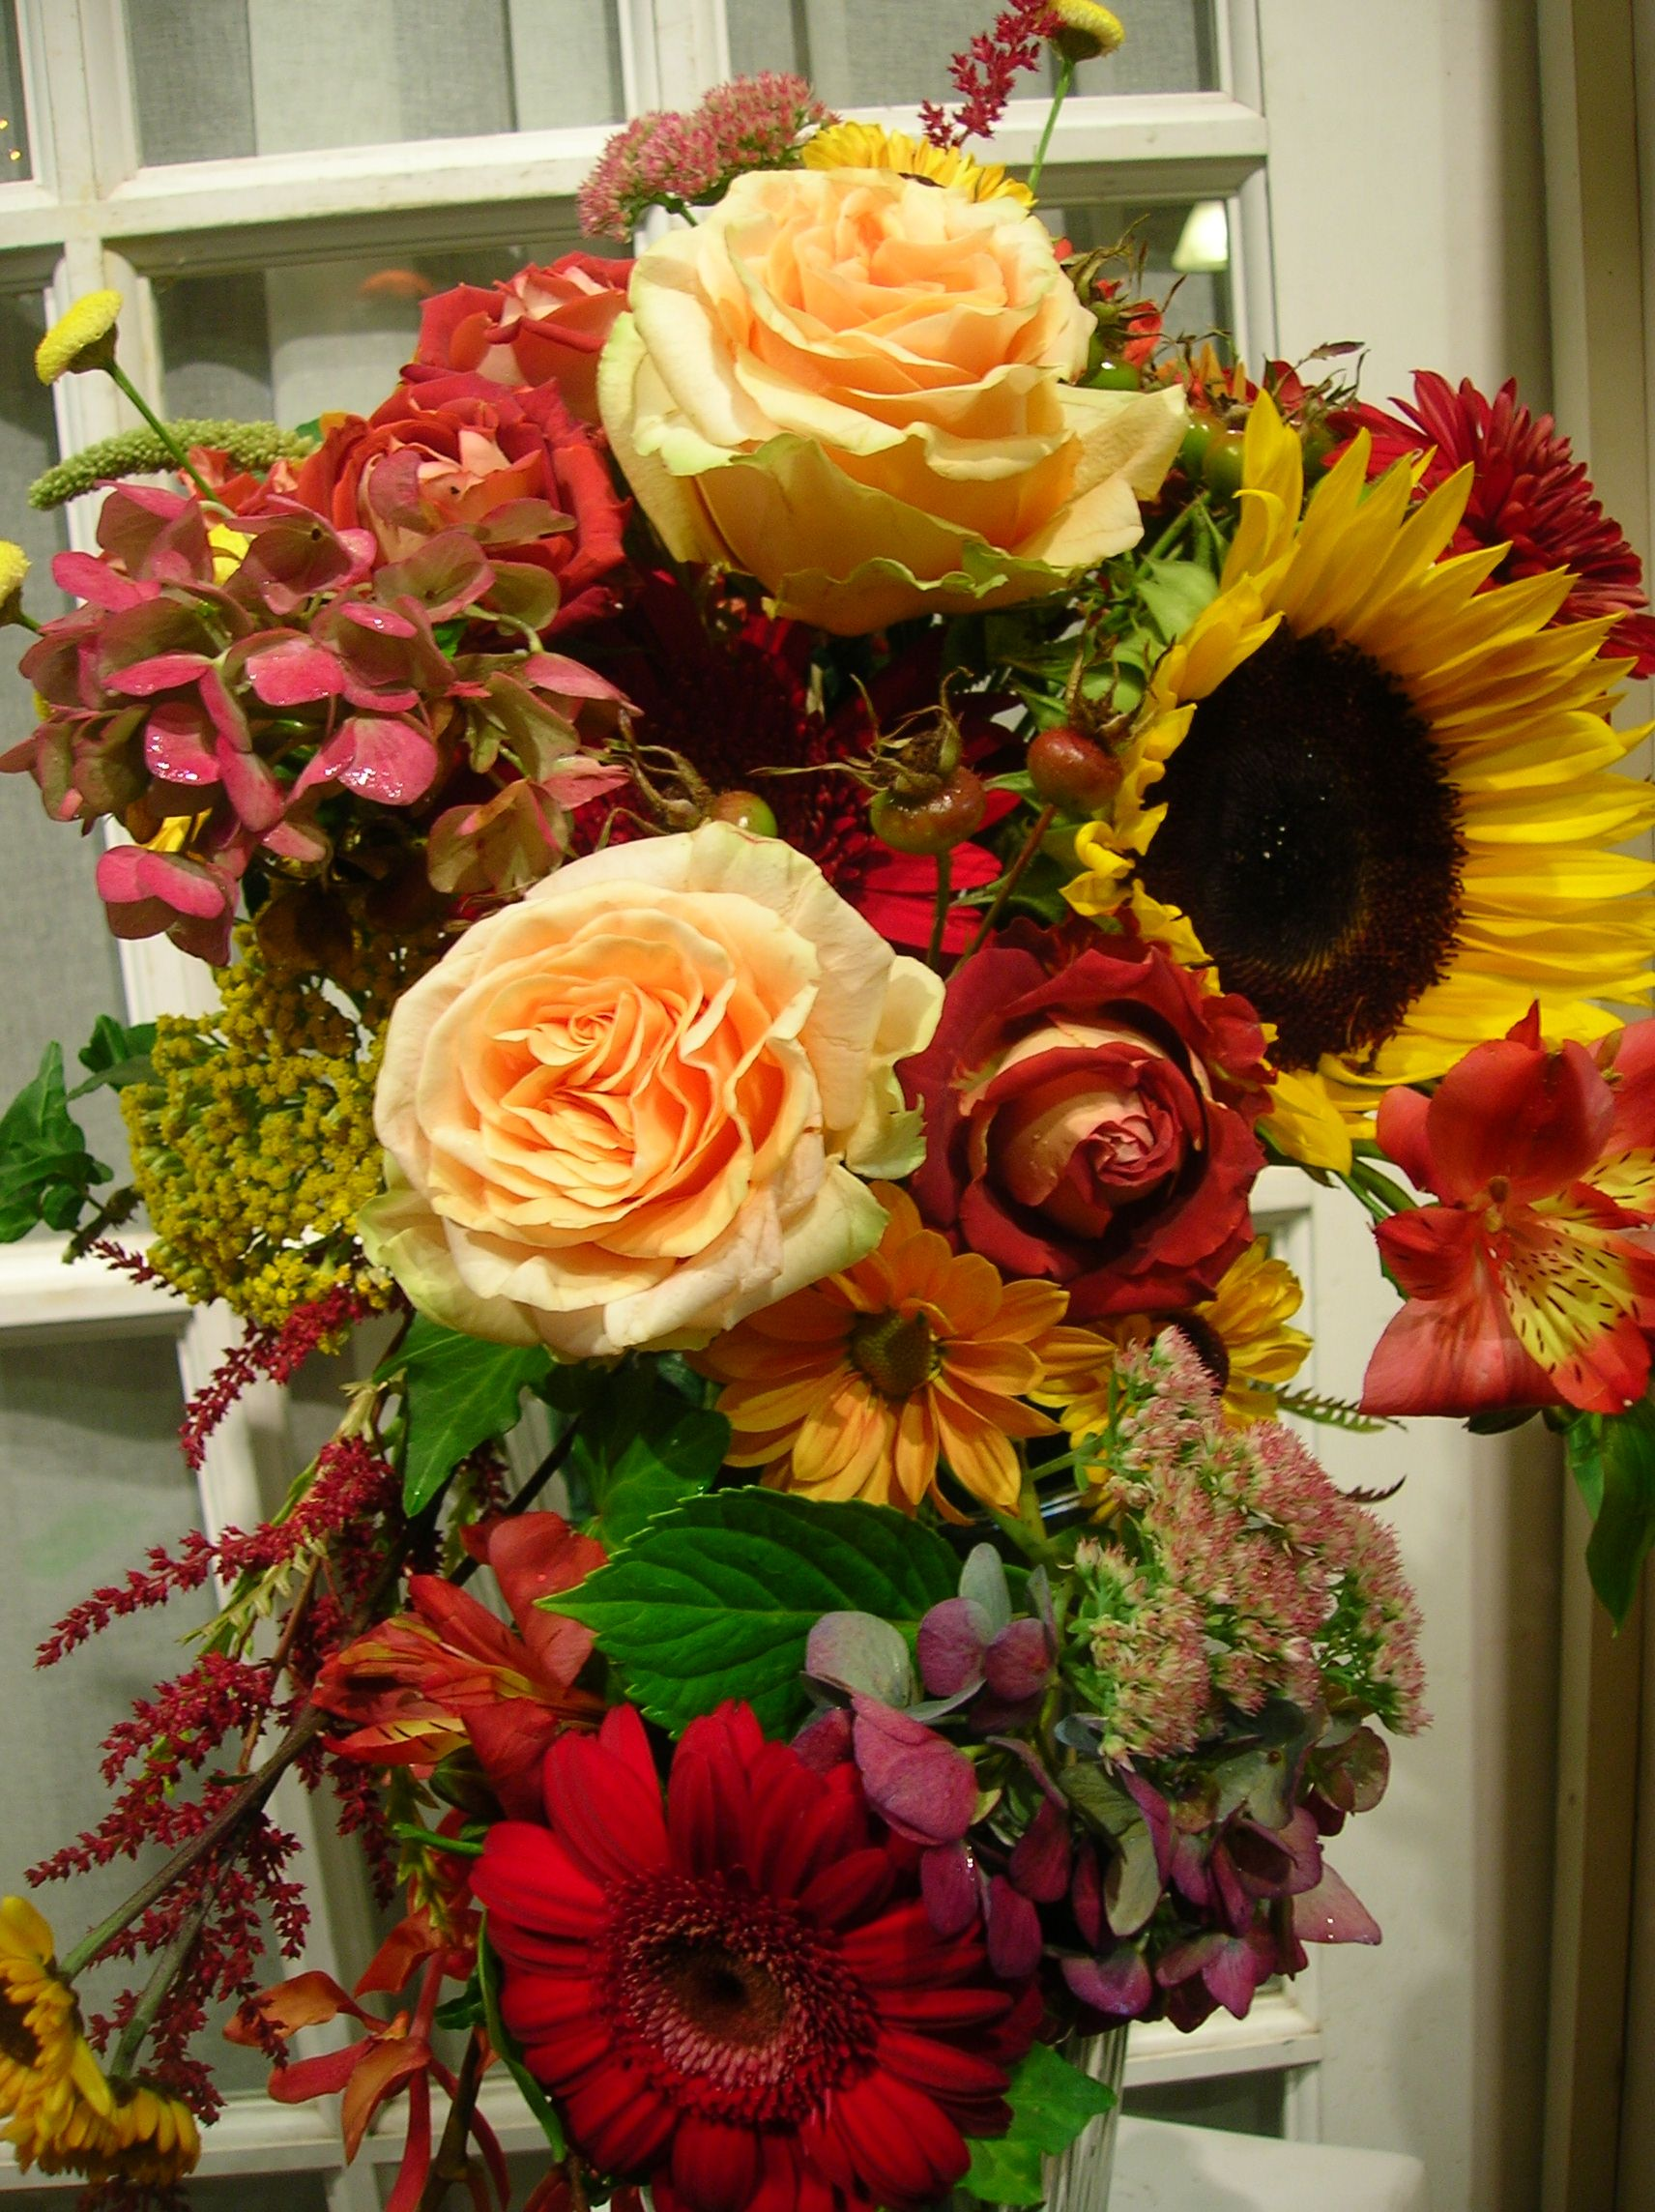 Fall wedding bouquets this is a lovley fall bouquet for a wedding fall wedding bouquets this is a lovley fall bouquet for a wedding party izmirmasajfo